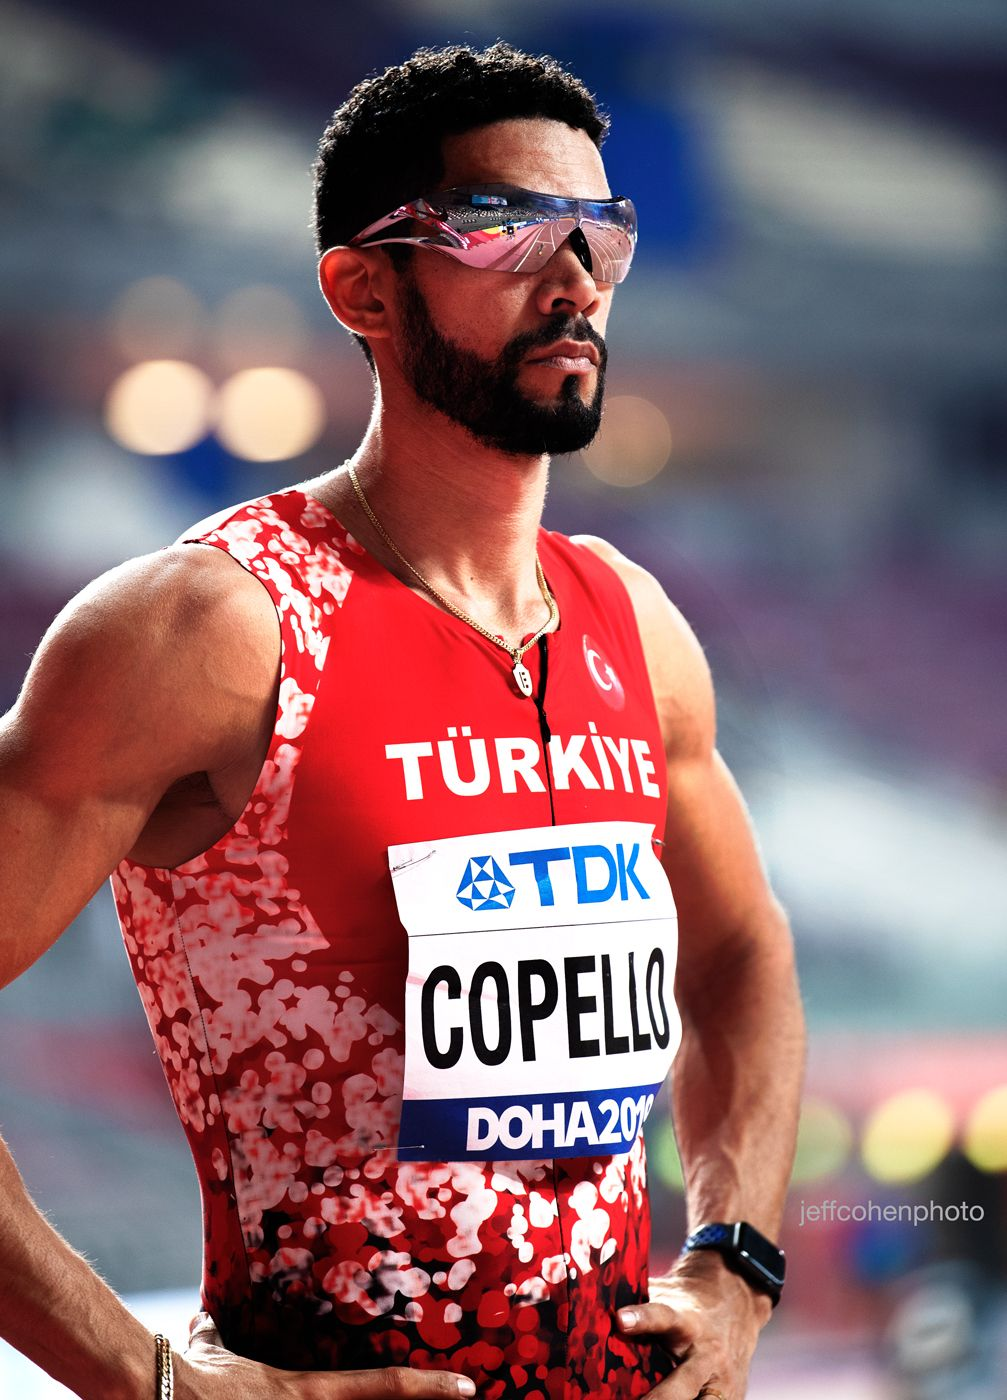 2019-DOHA-WC-day-1--2619-copello-400hm---jeff-cohen-photo--web.jpg